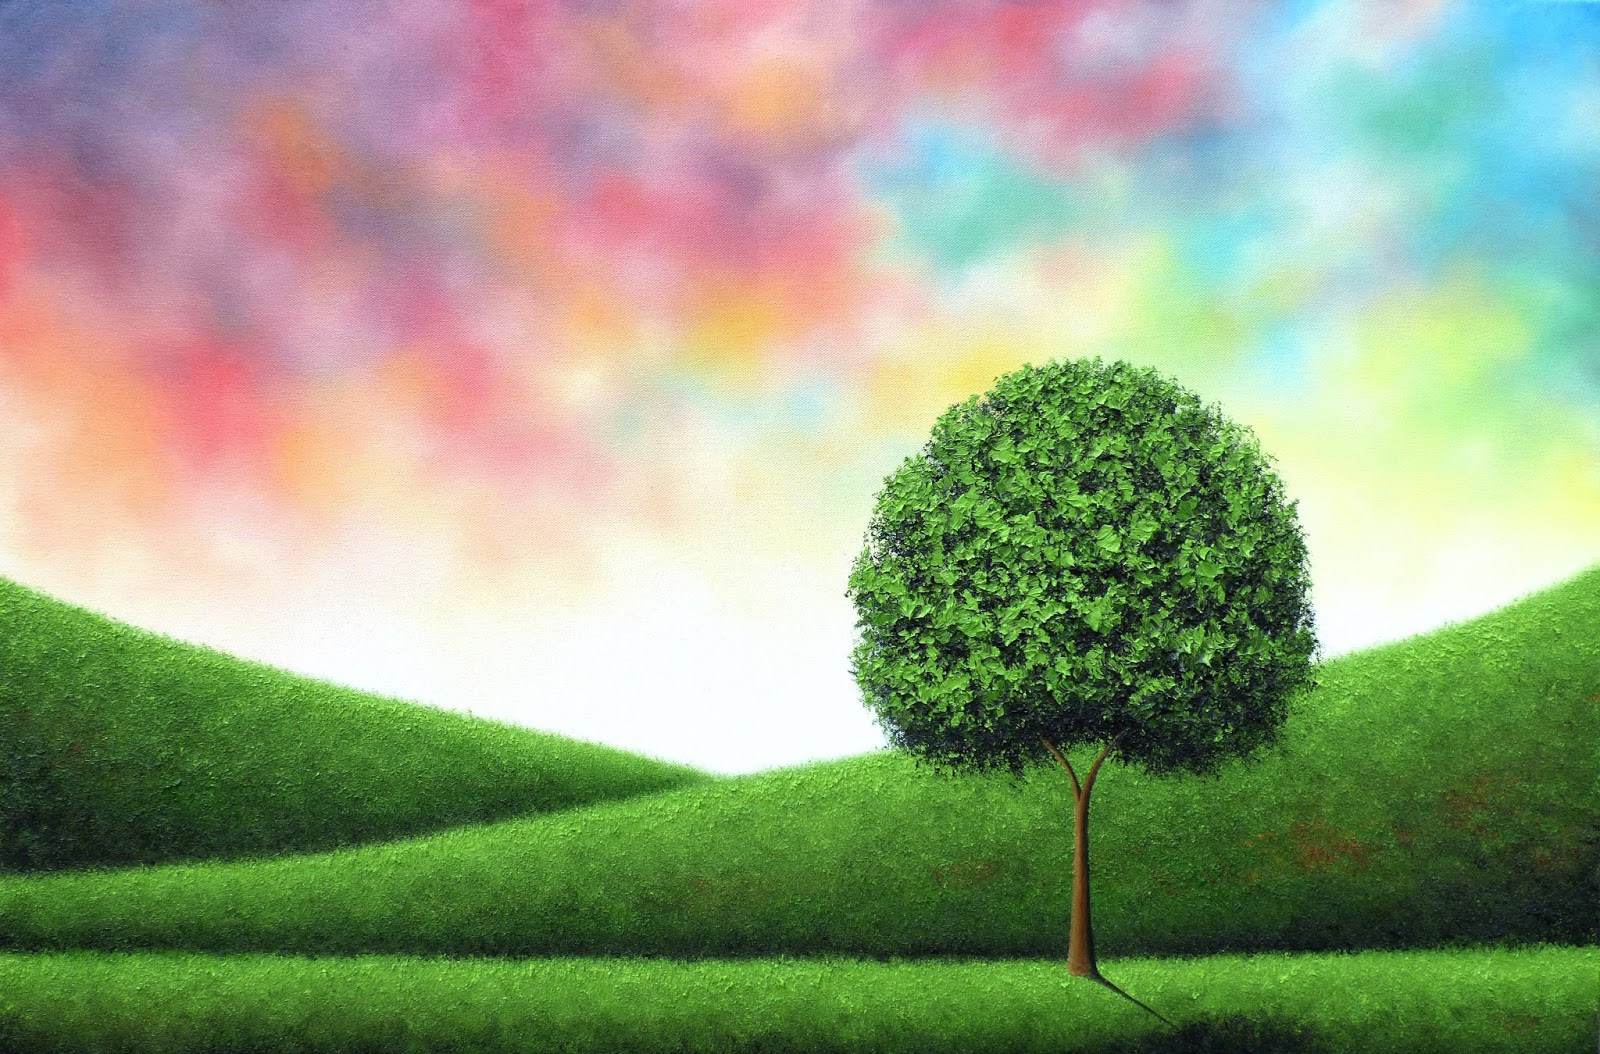 Green Tree Oil Painting, Original Painting, Colorful Landscape ...